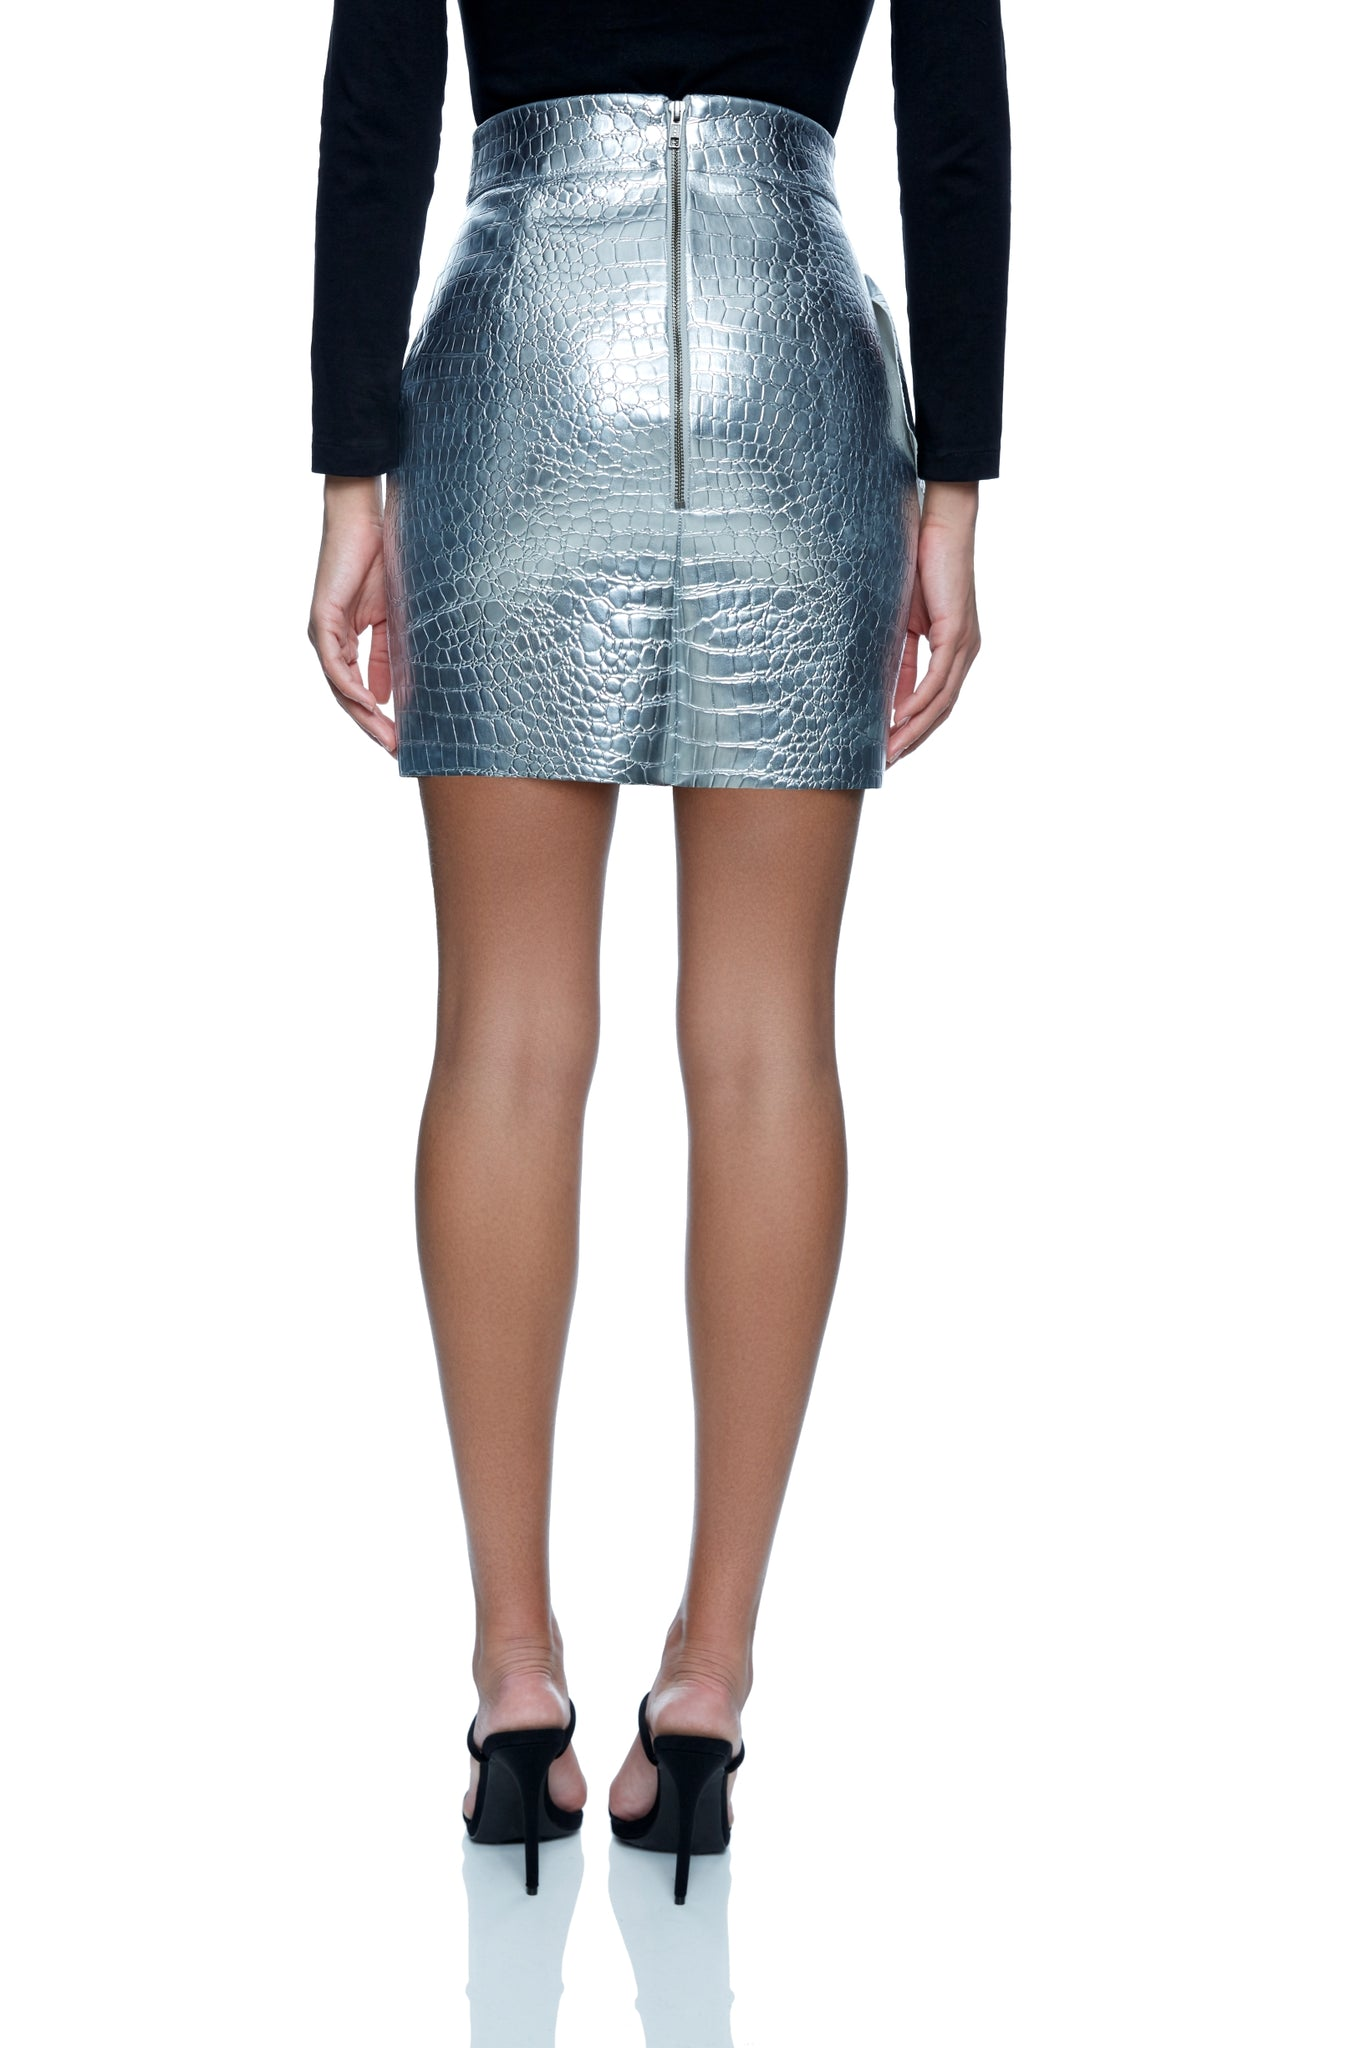 Corina Croc Embossed Faux Leather Skirt